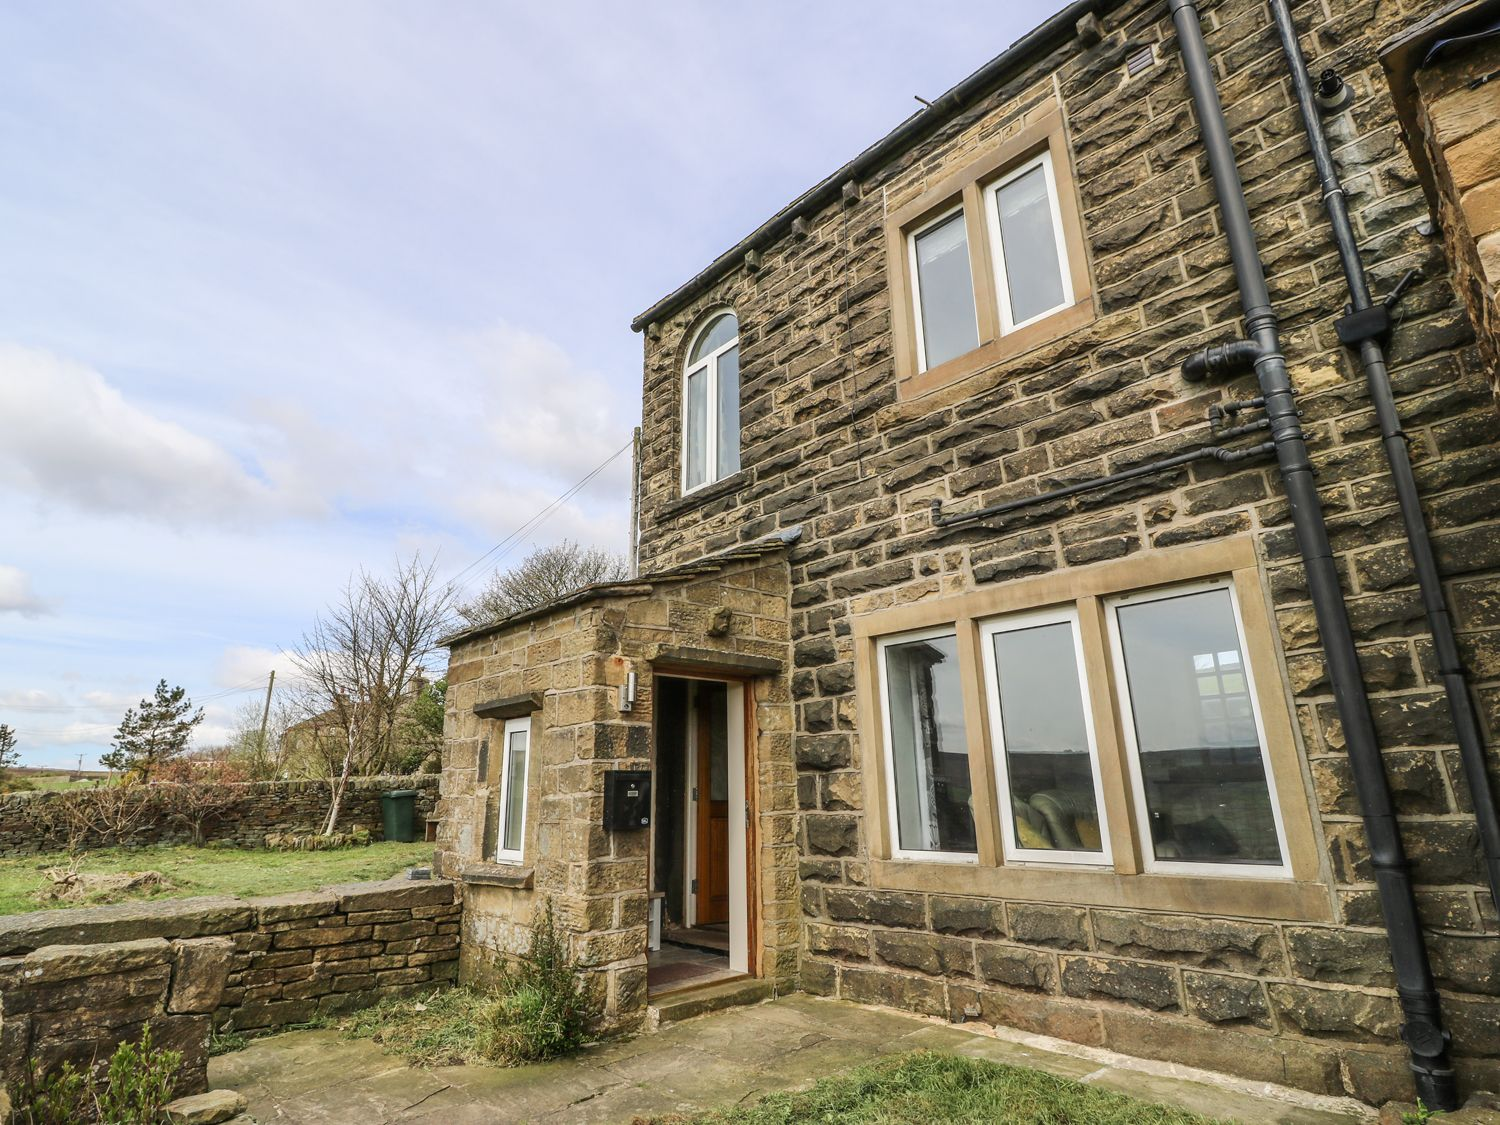 17 Upper Marsh Lane - Yorkshire Dales - 971949 - photo 1